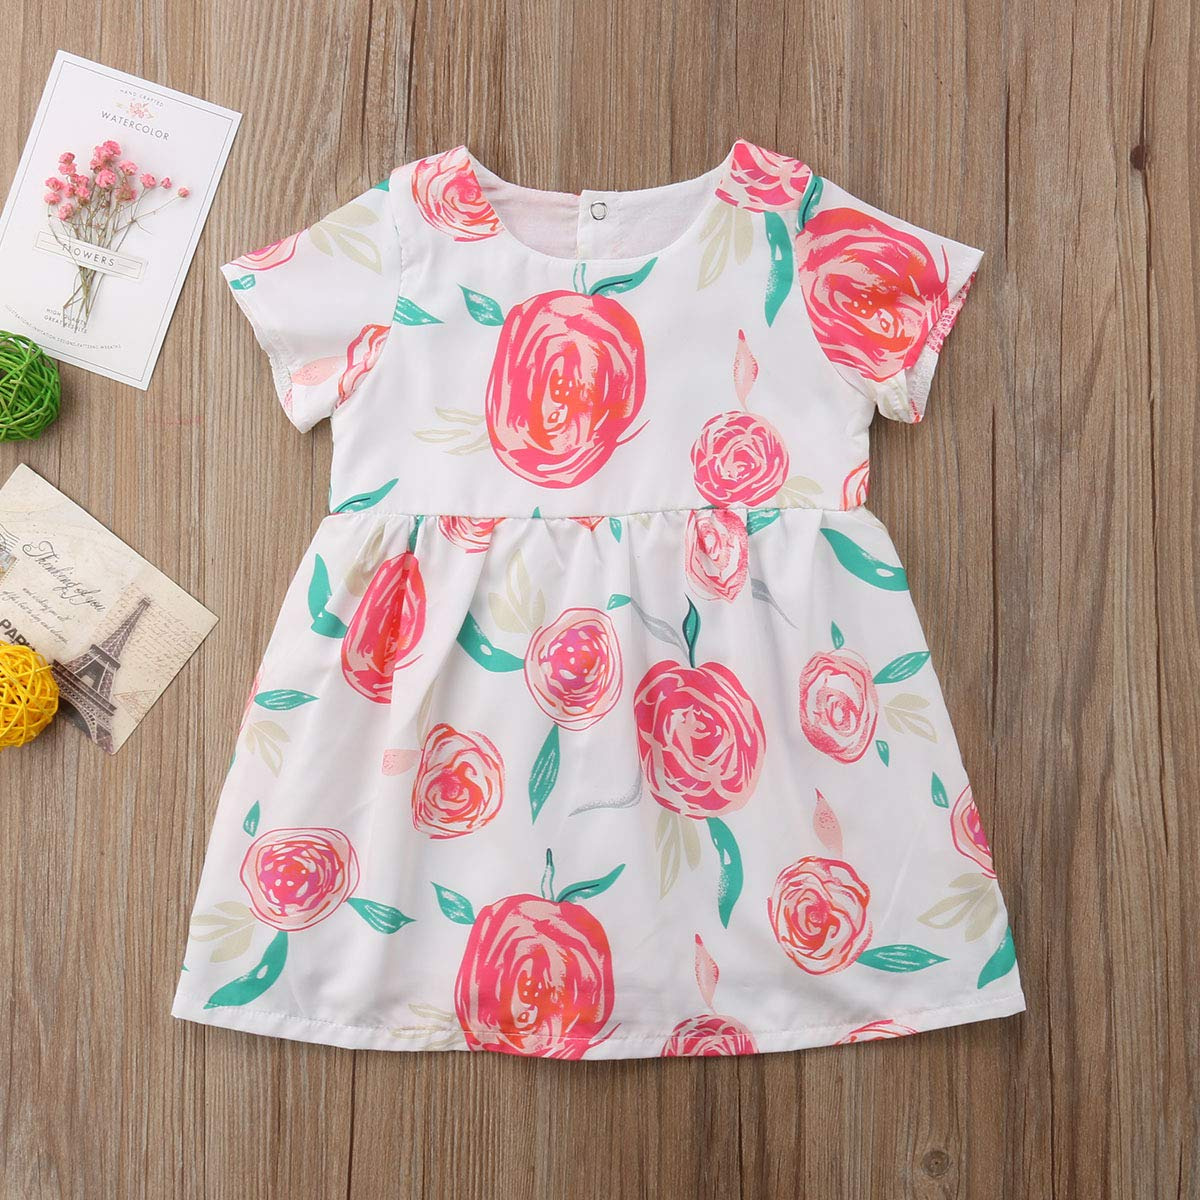 Cheeulish Toddler Baby Girl Kids Summer Rose Floral Short Sleeve Casual Dress Sundress